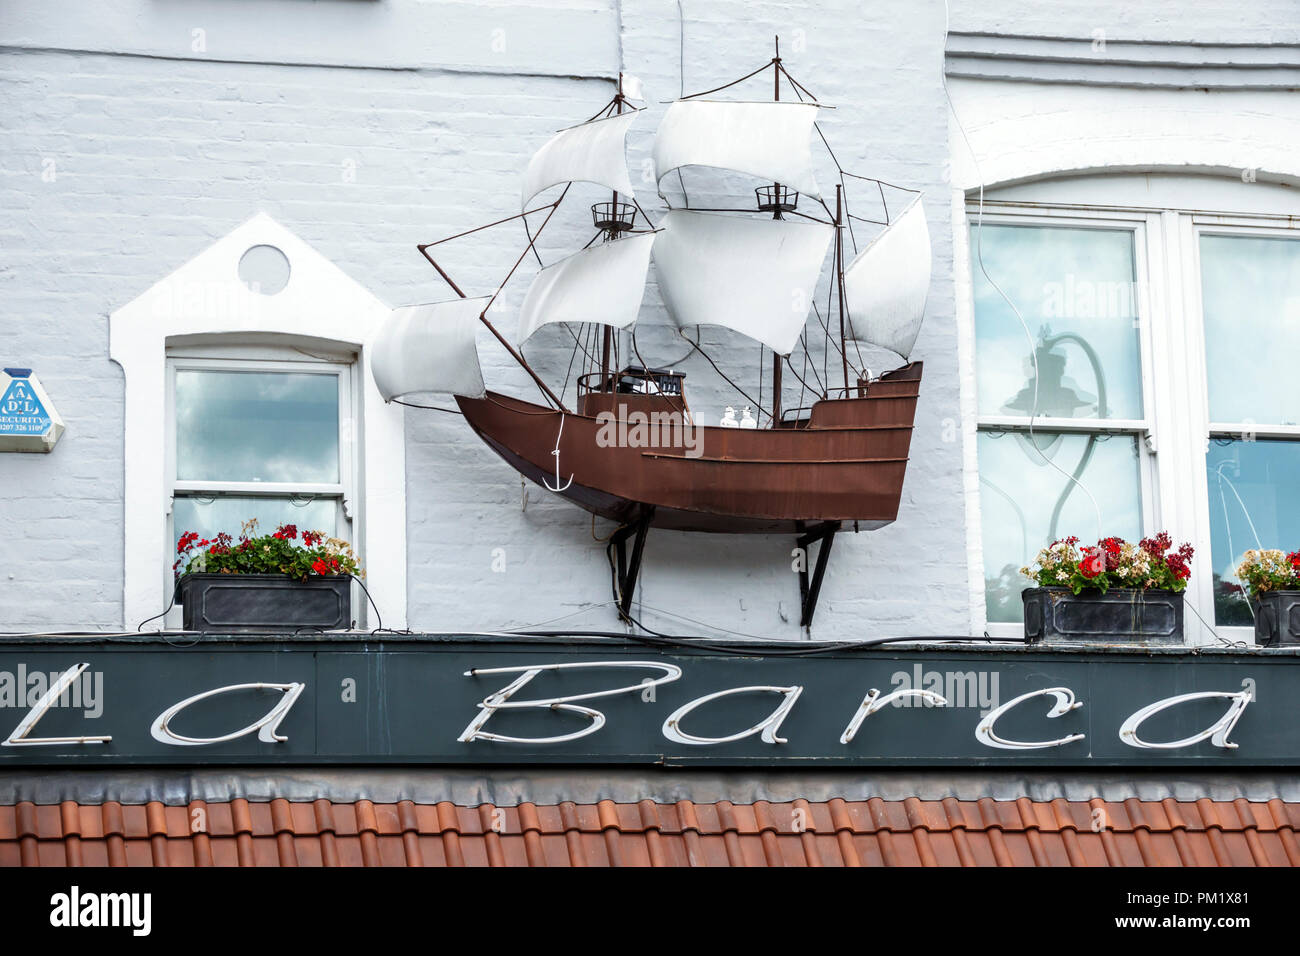 London England Great Britain United Kingdom South Bank Waterloo La Barca Ristorante Tuscan restaurant exterior illustrated sign antique model ship - Stock Image